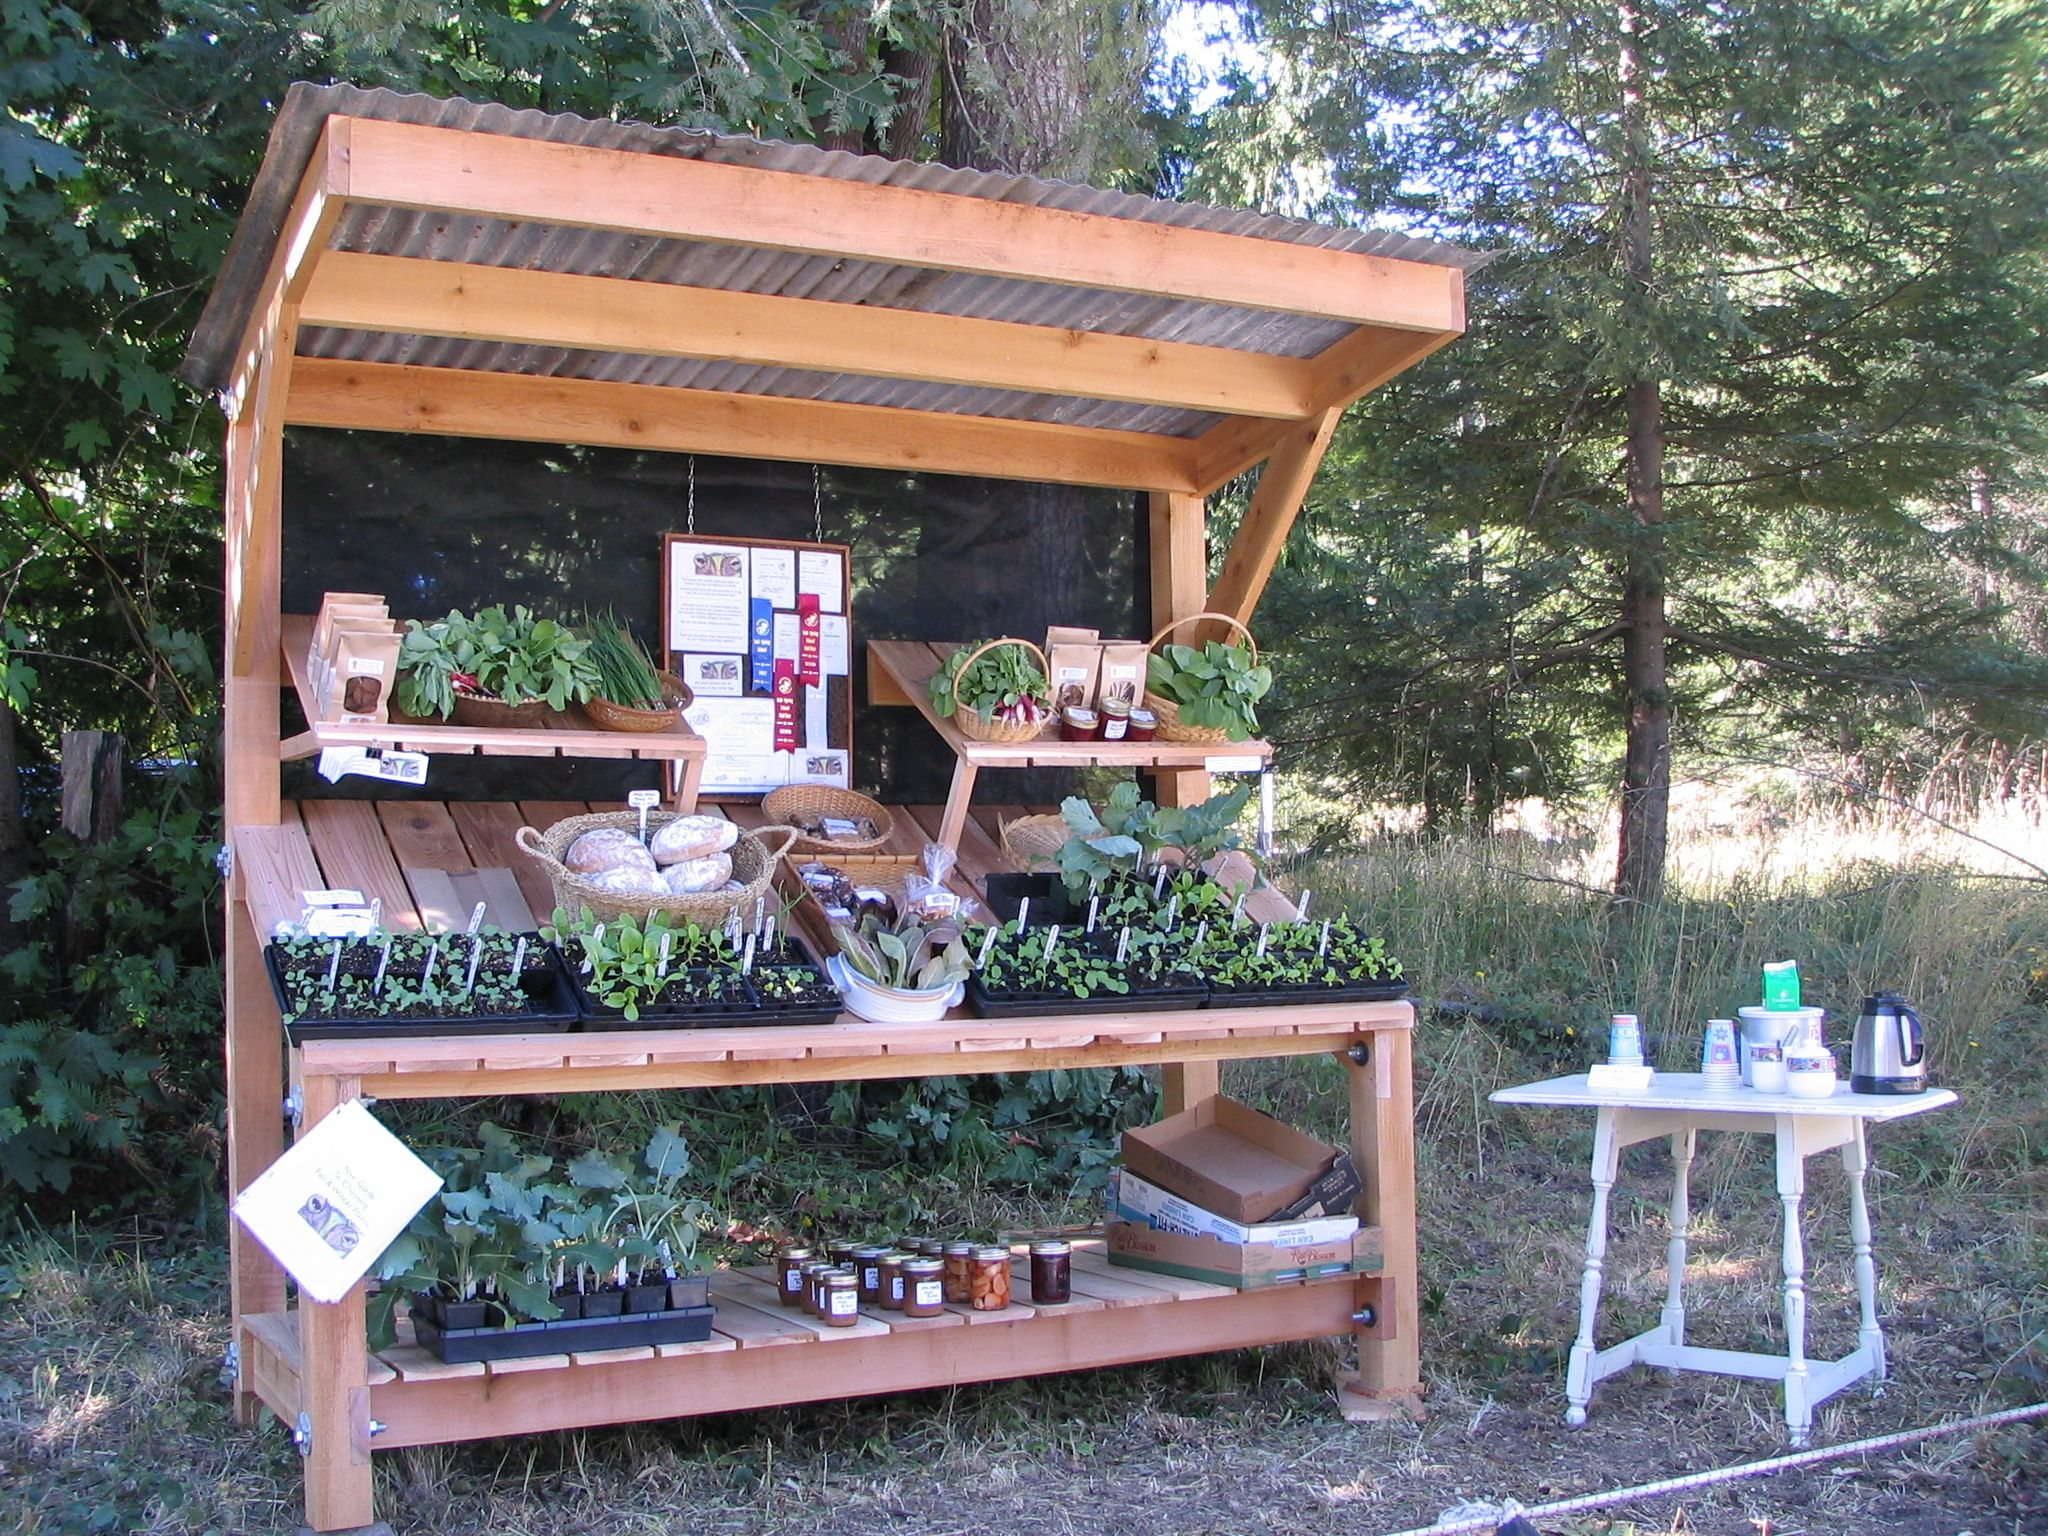 On the *NEW* farm stand Farm stand, Vegetable stand